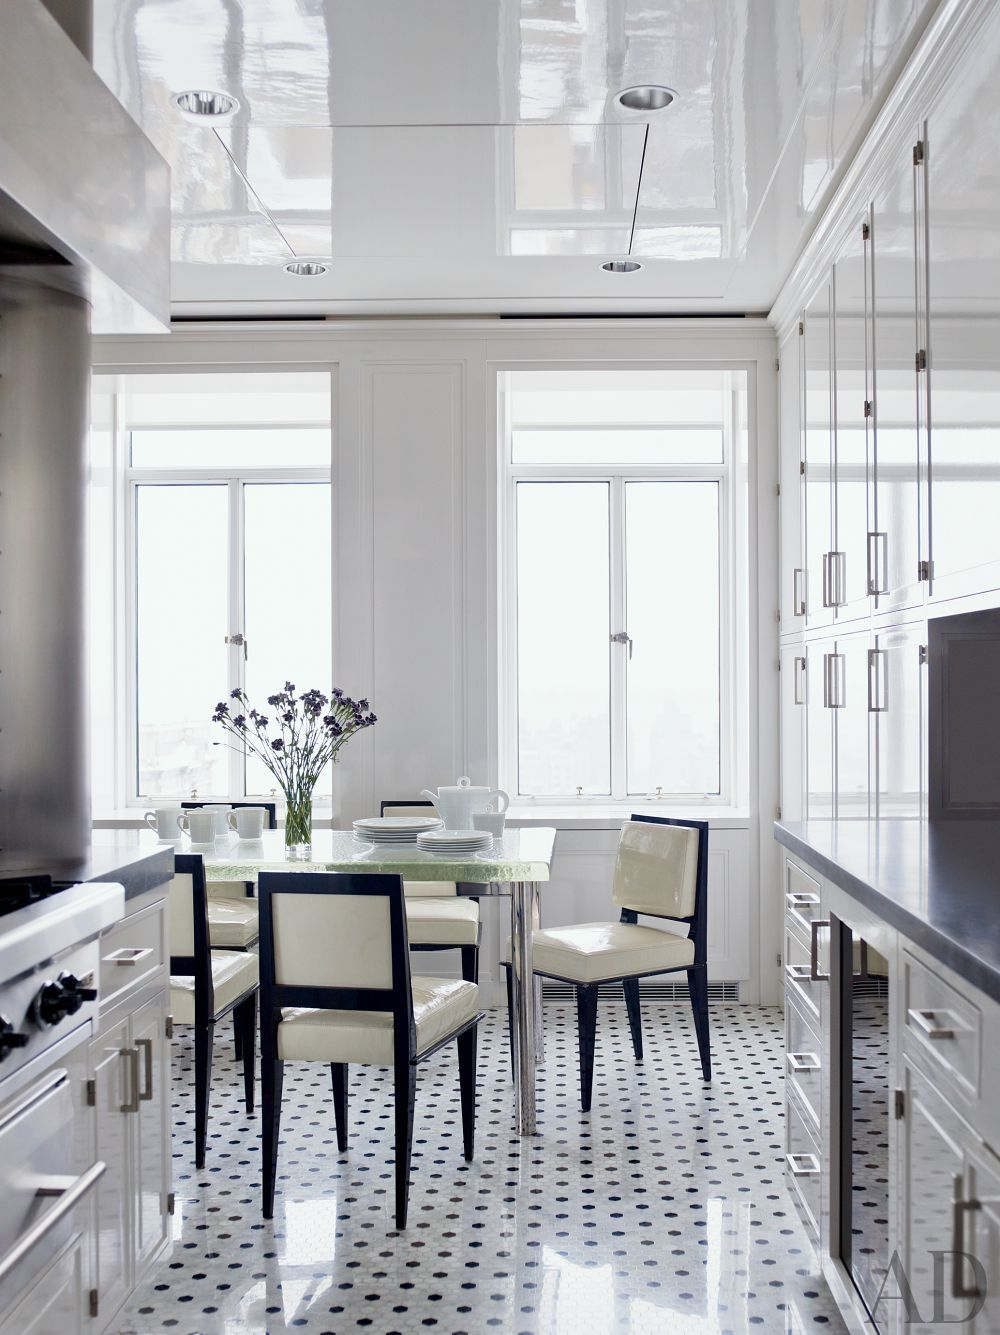 Kitchen Designers Nyc A Blackandwhite Kitchendelphine Krakoff's Pamplemousse